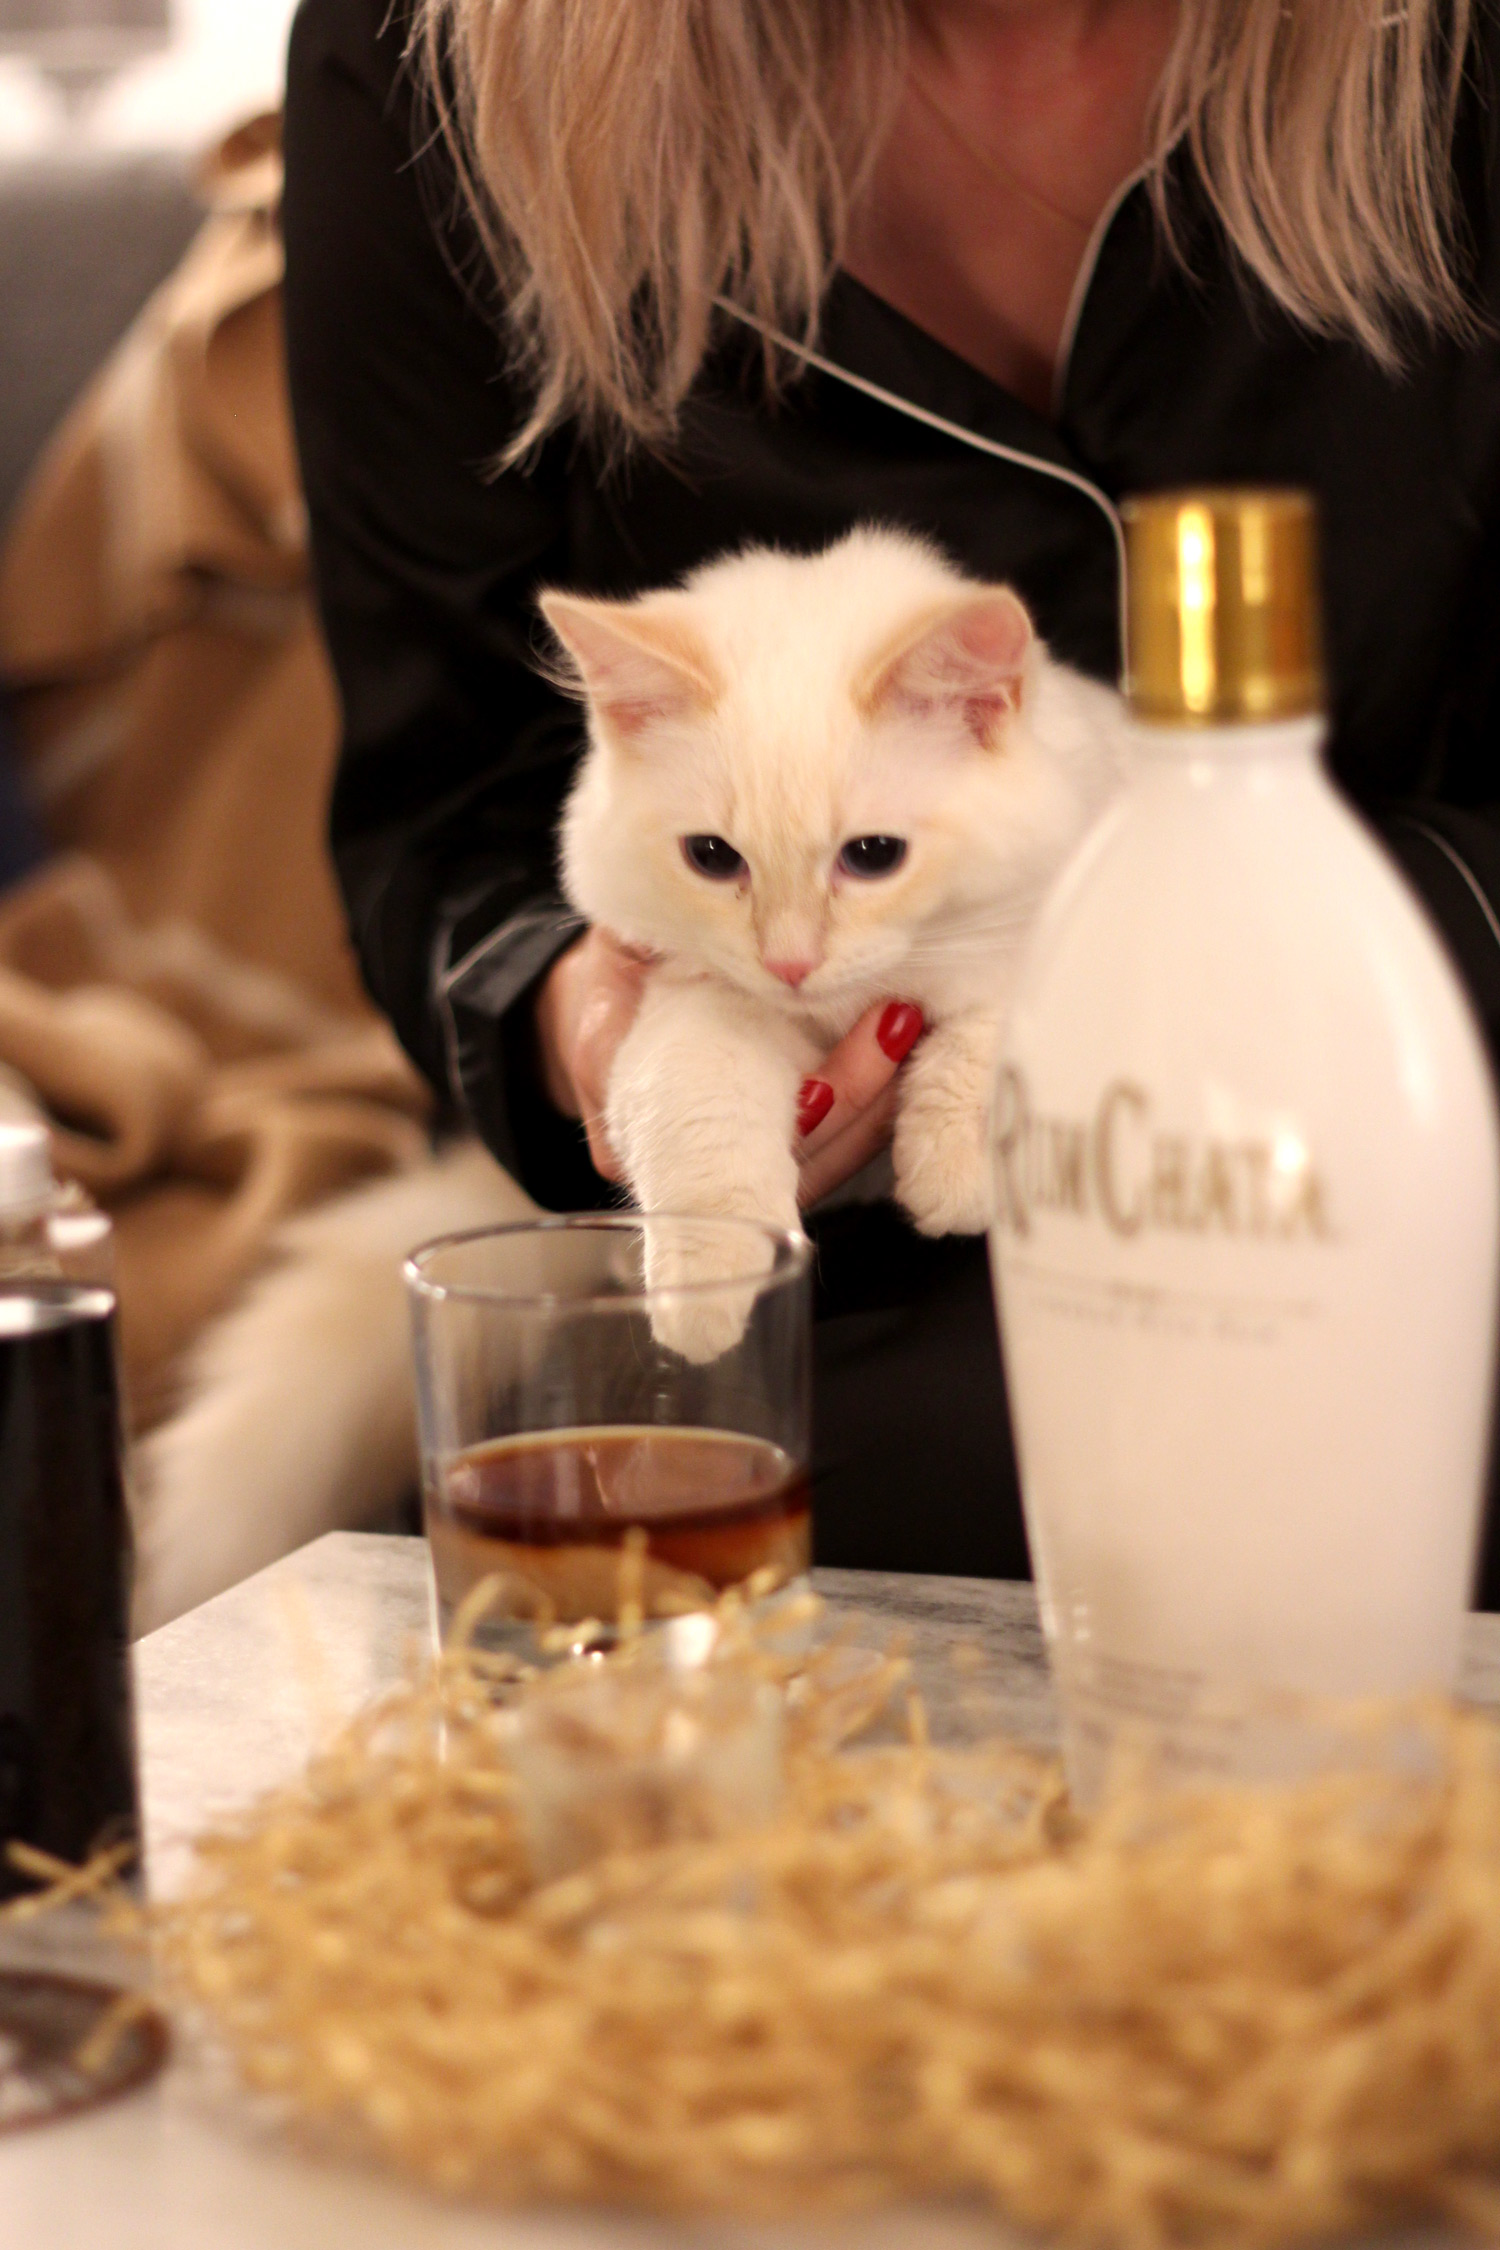 rum-chata-post-girls-night-in-lifestyle-cocktails-1